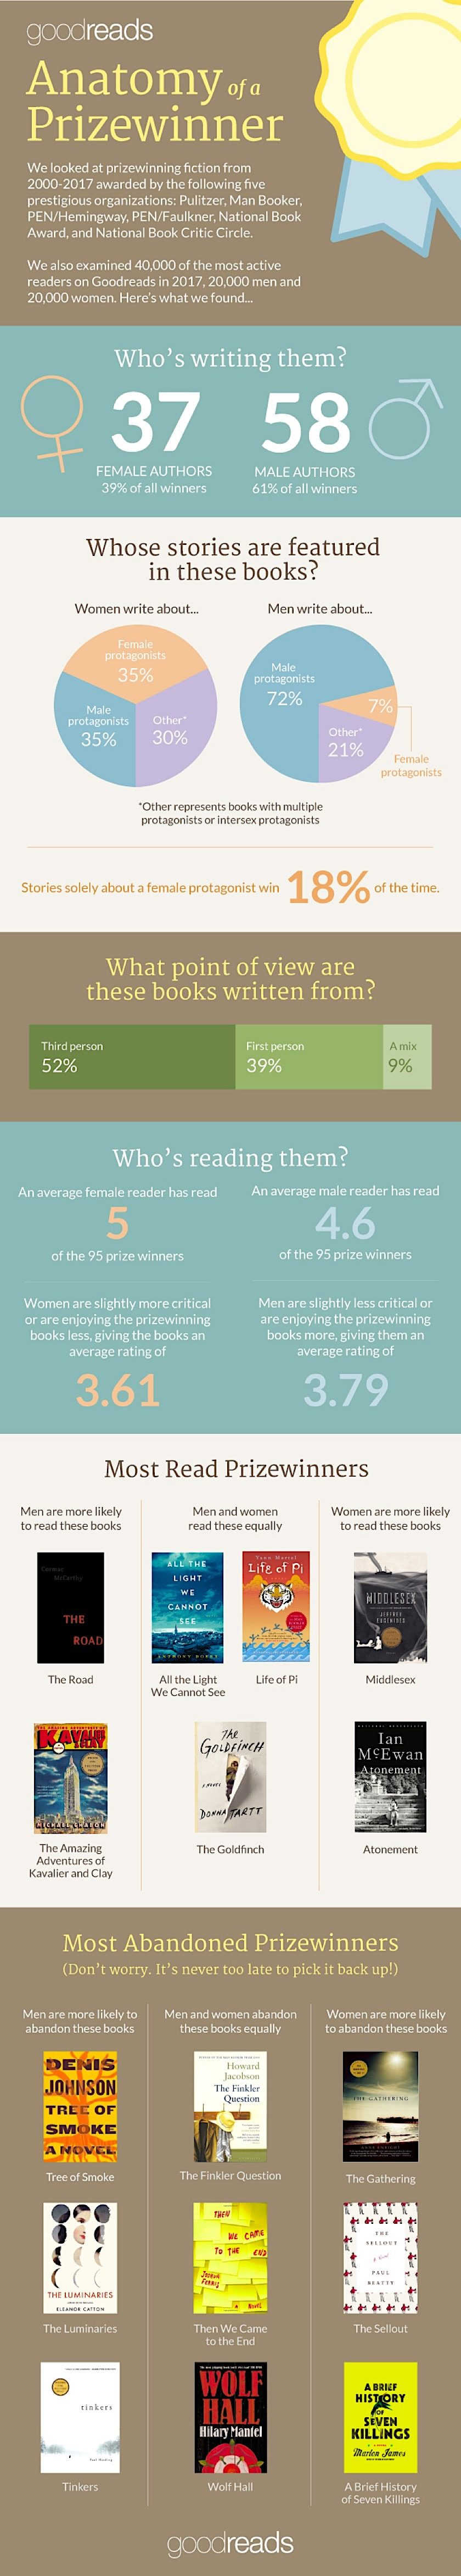 Anatomy of prize-winning books #infographic